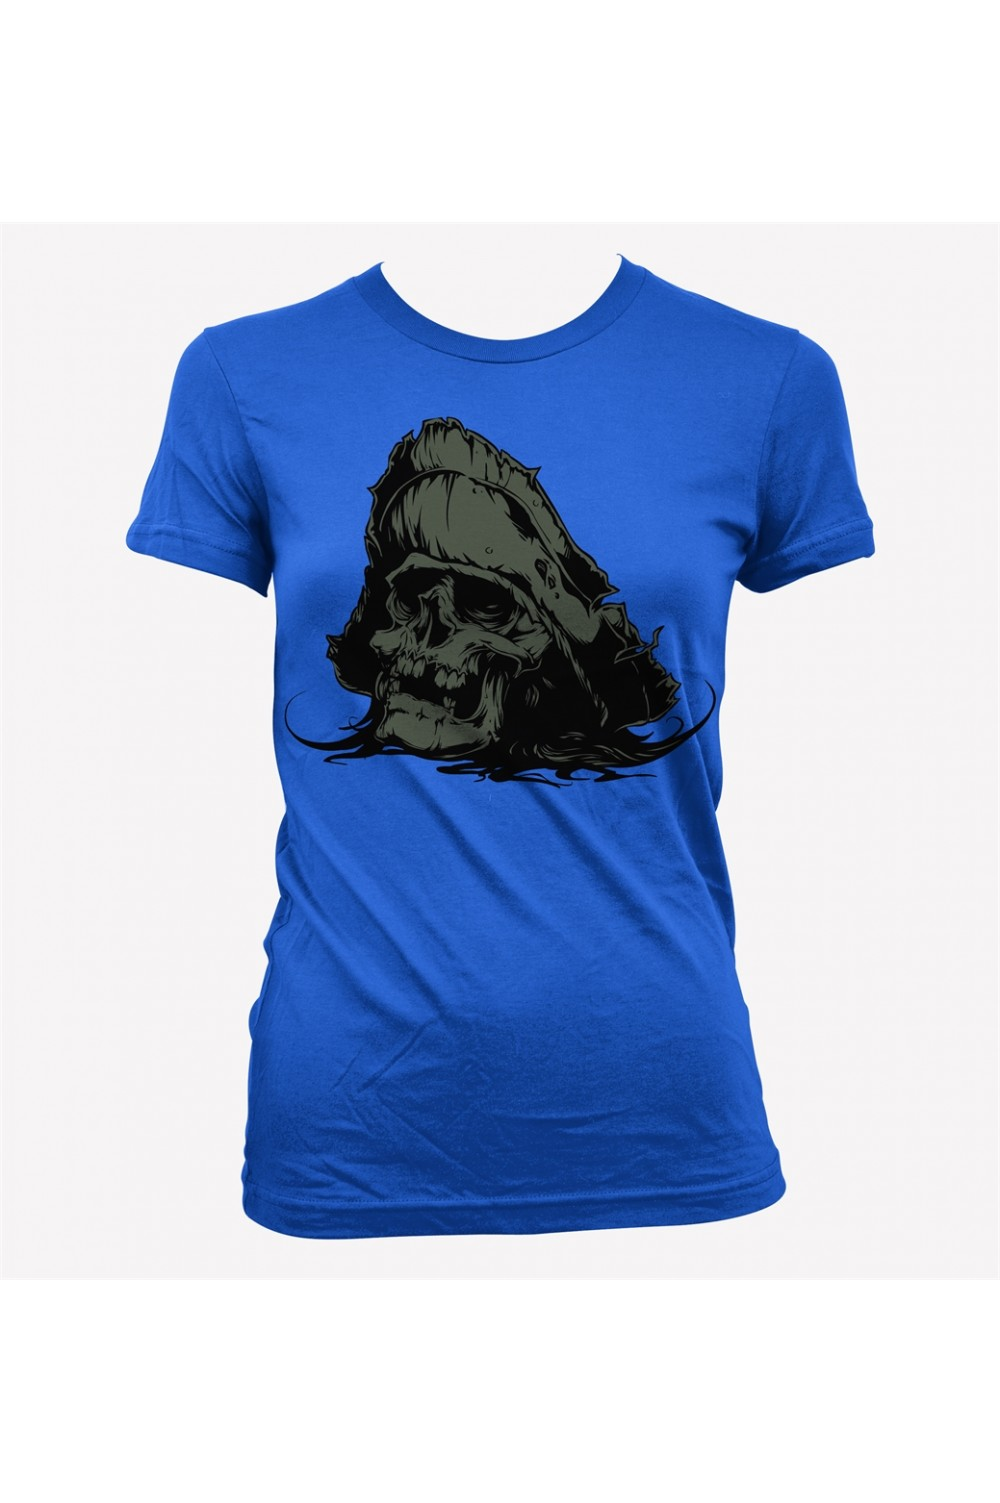 Skulls Pirate Women Printed T-shirt 4004